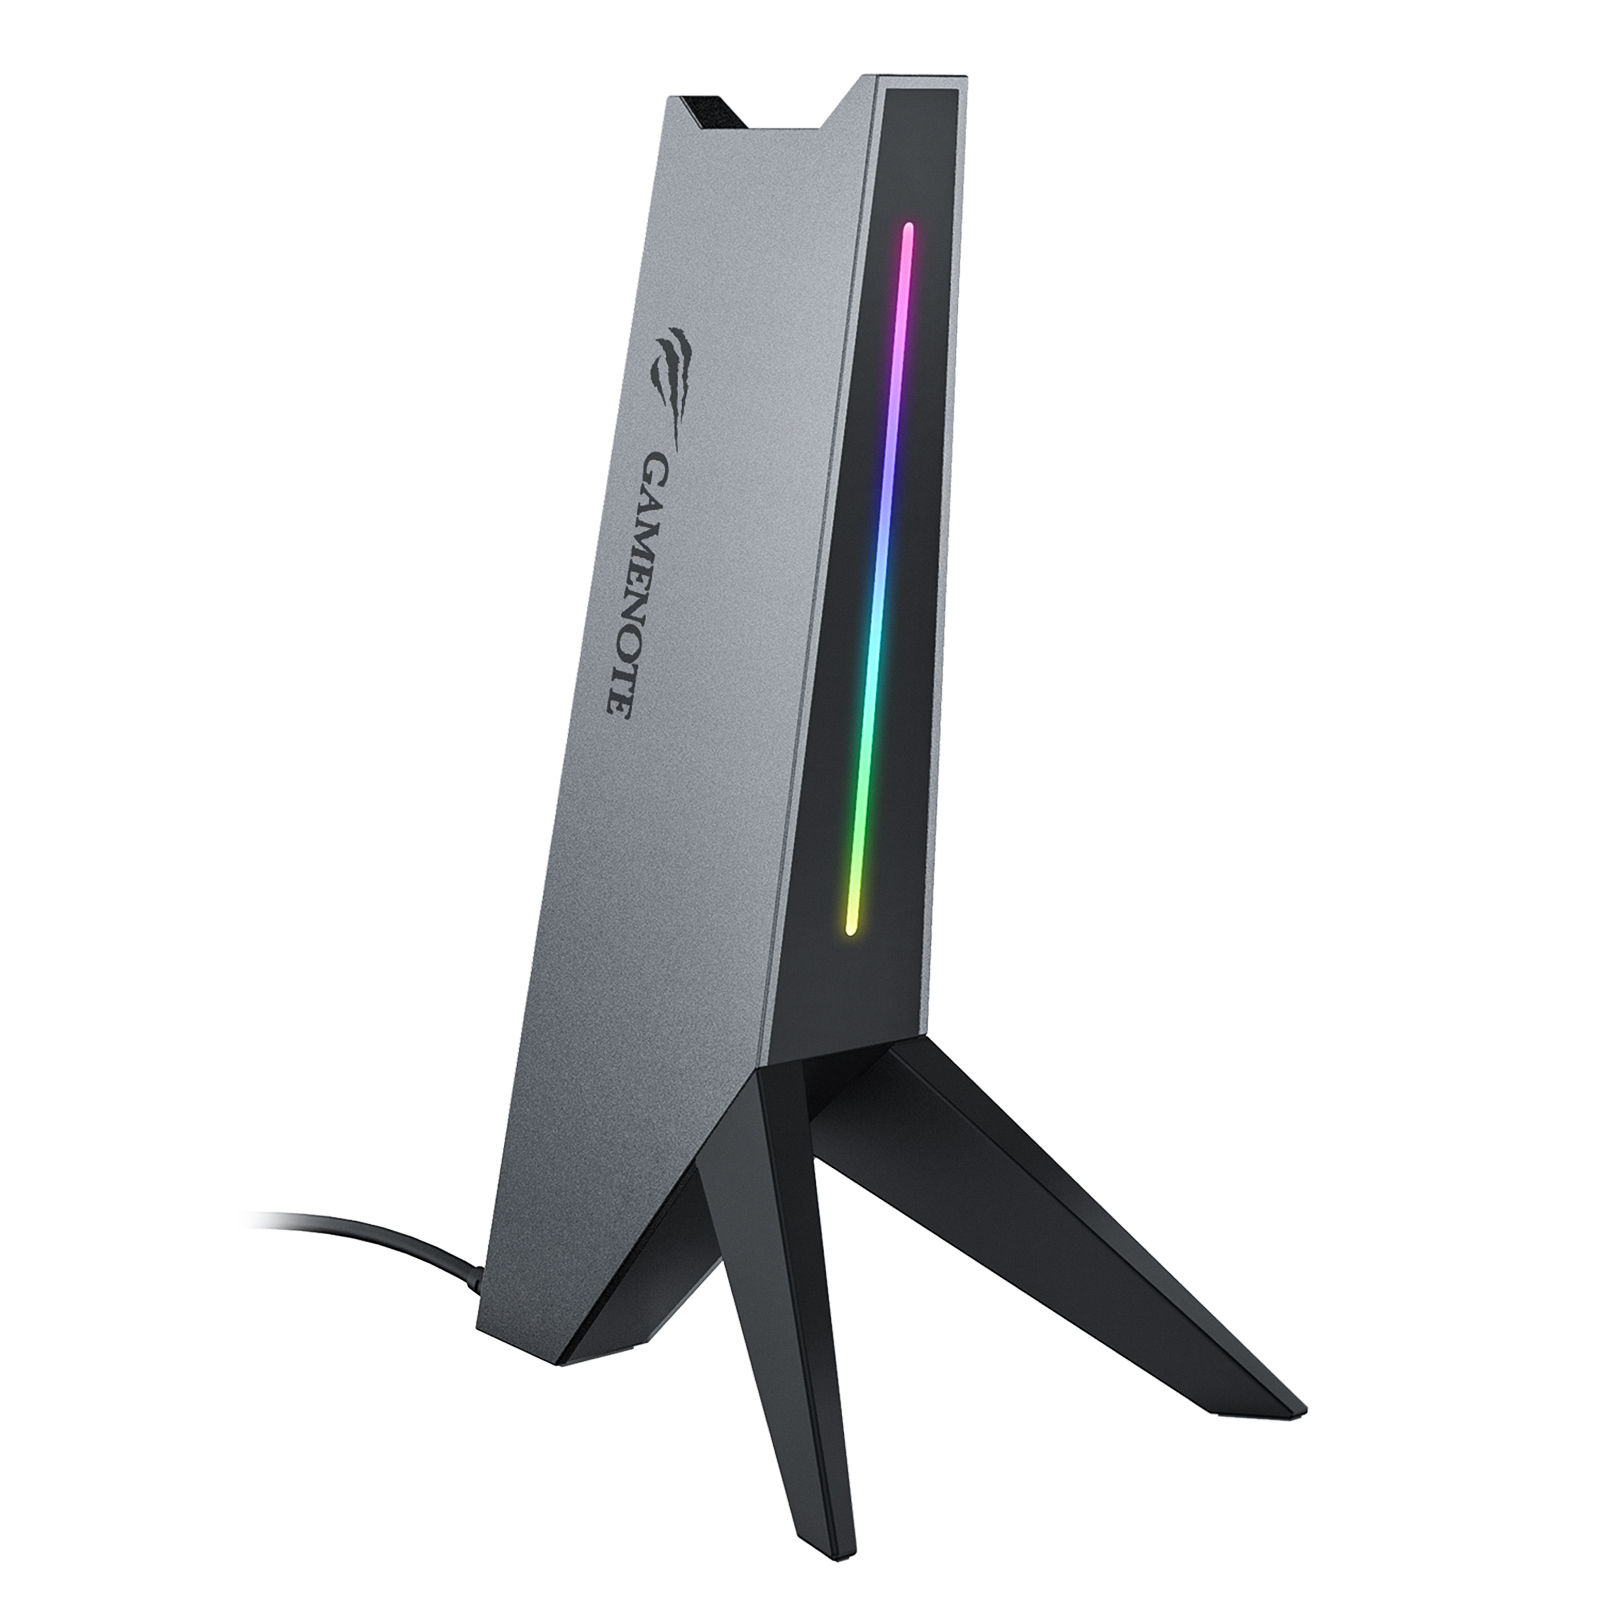 Havit RGB Headphone Stand with 3.5mm AUX and Dual USB Ports 7